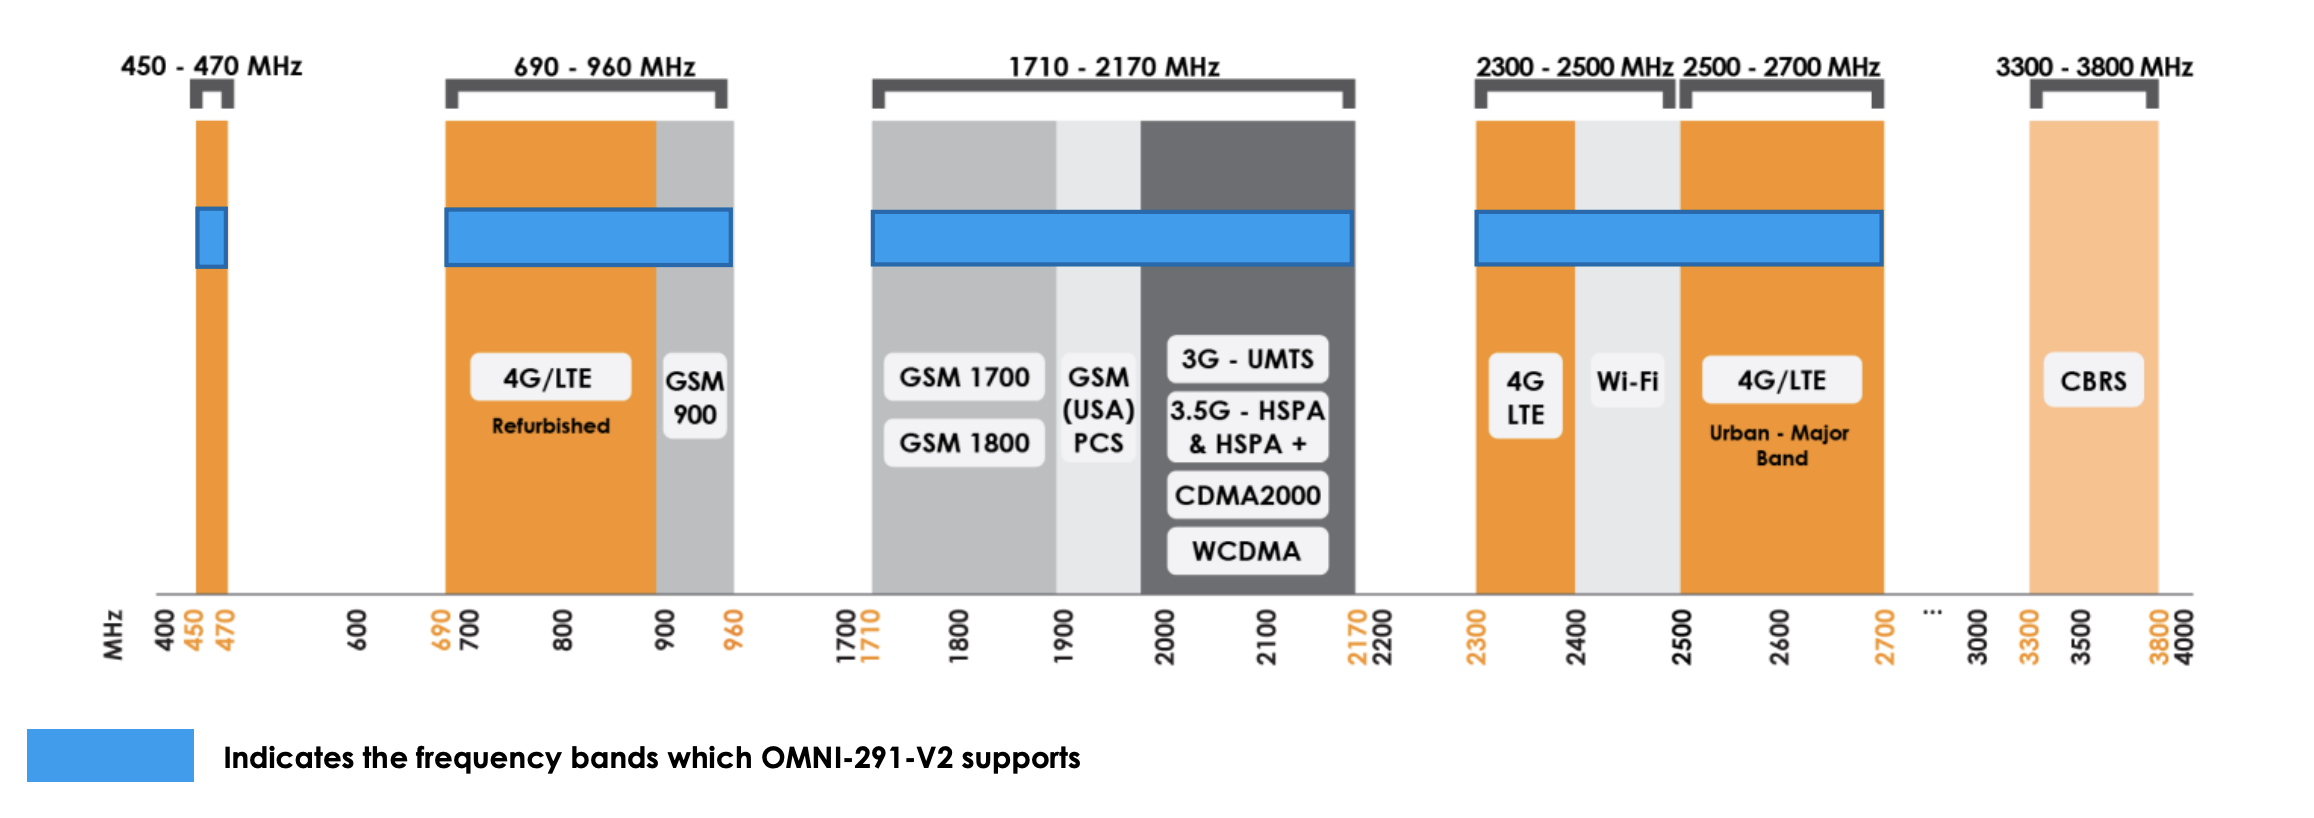 omni-291-antenna-supported-frequencies